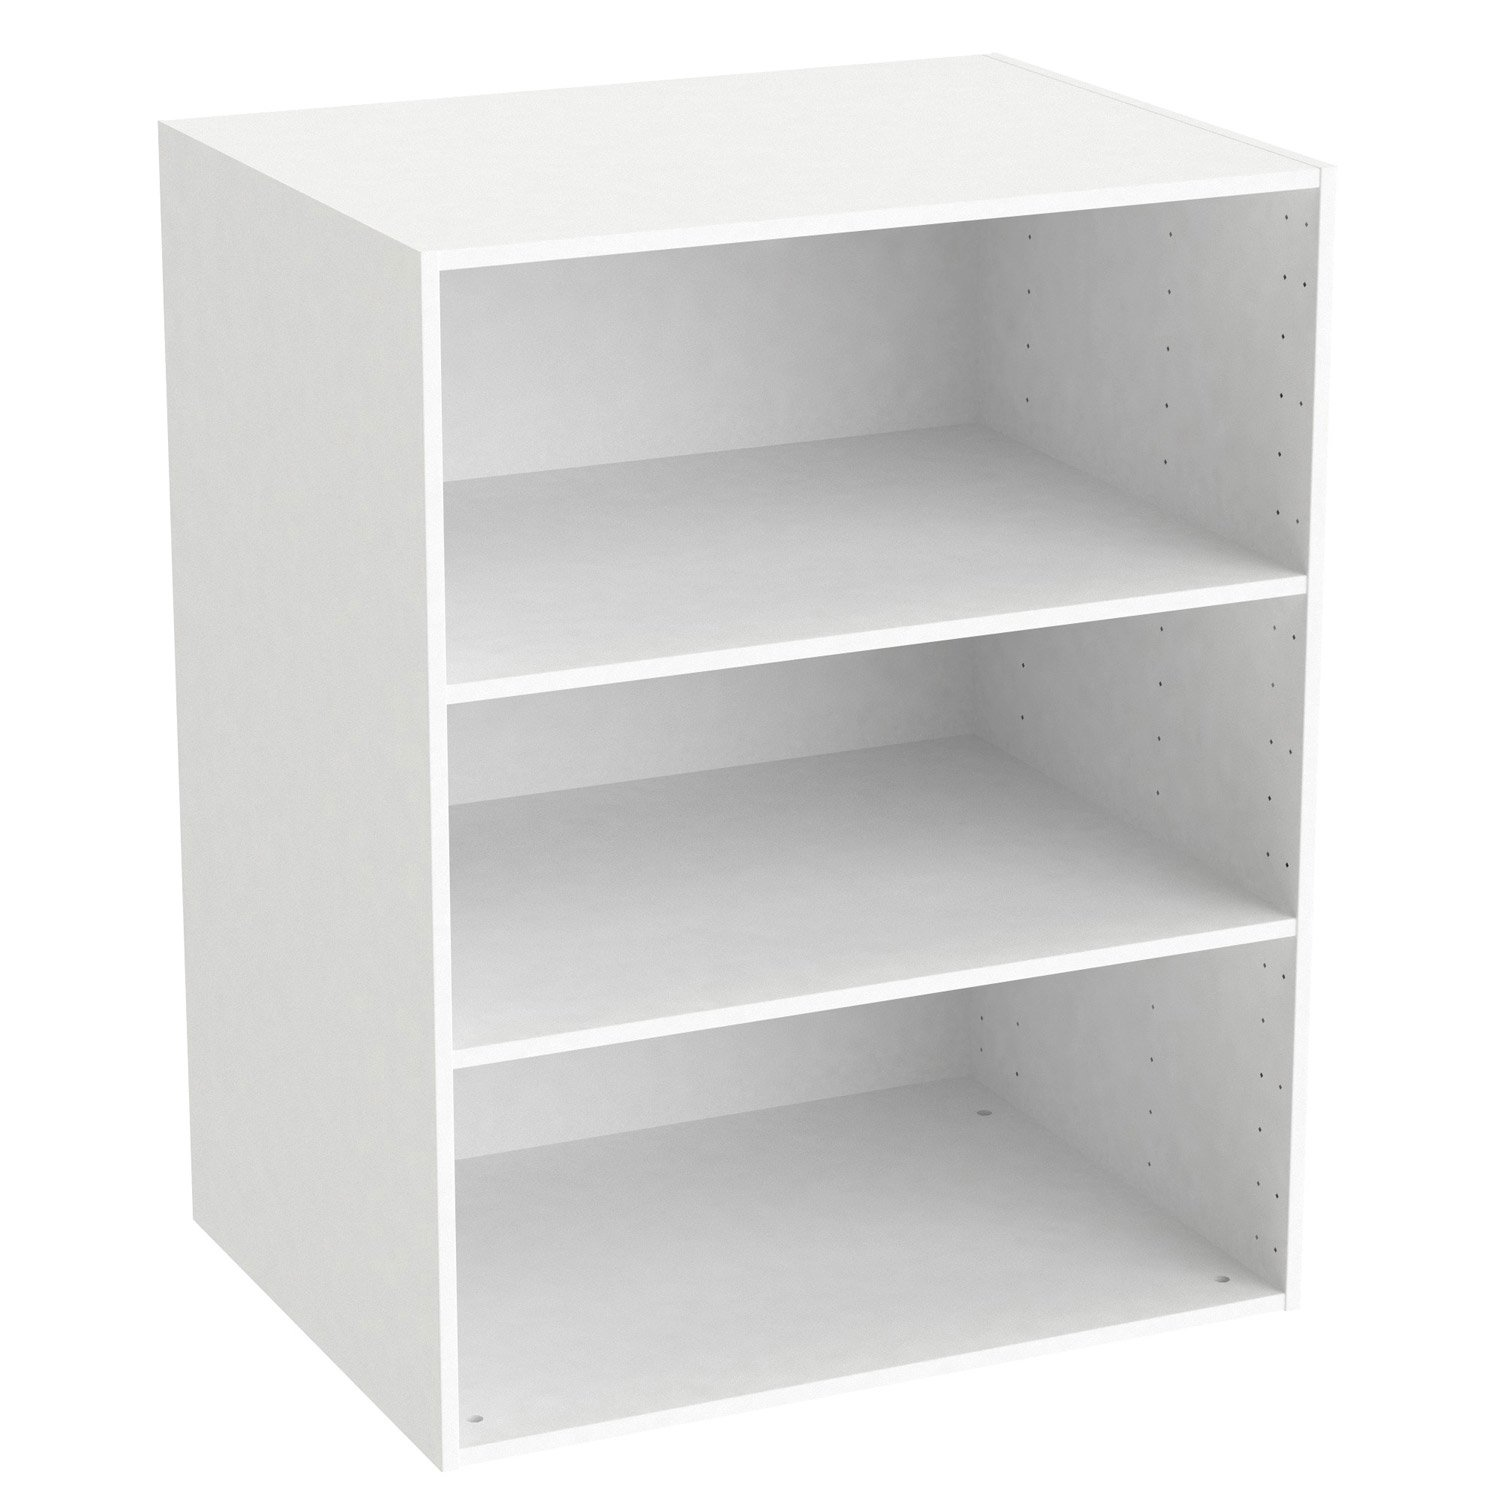 caisson spaceo home 100 x 80 x 60 cm blanc